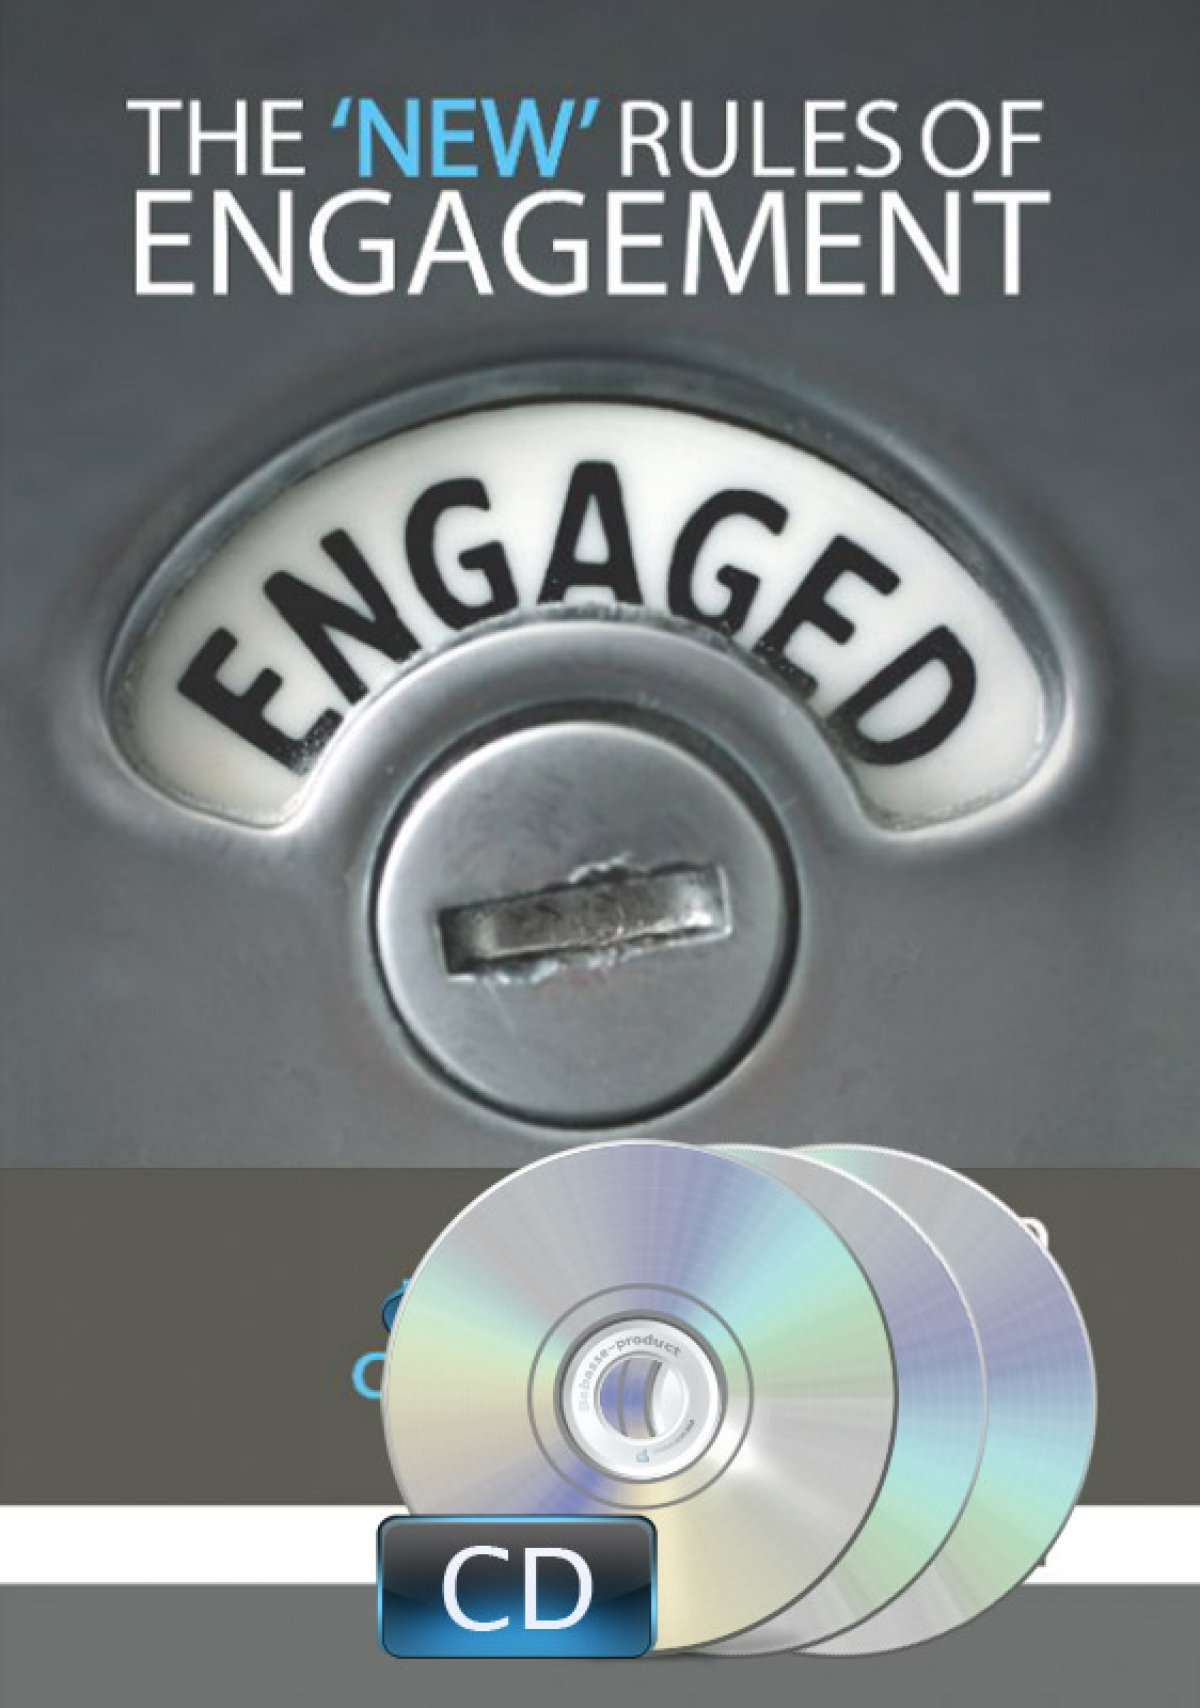 The 'New' Rules of Engagement - Audio CD